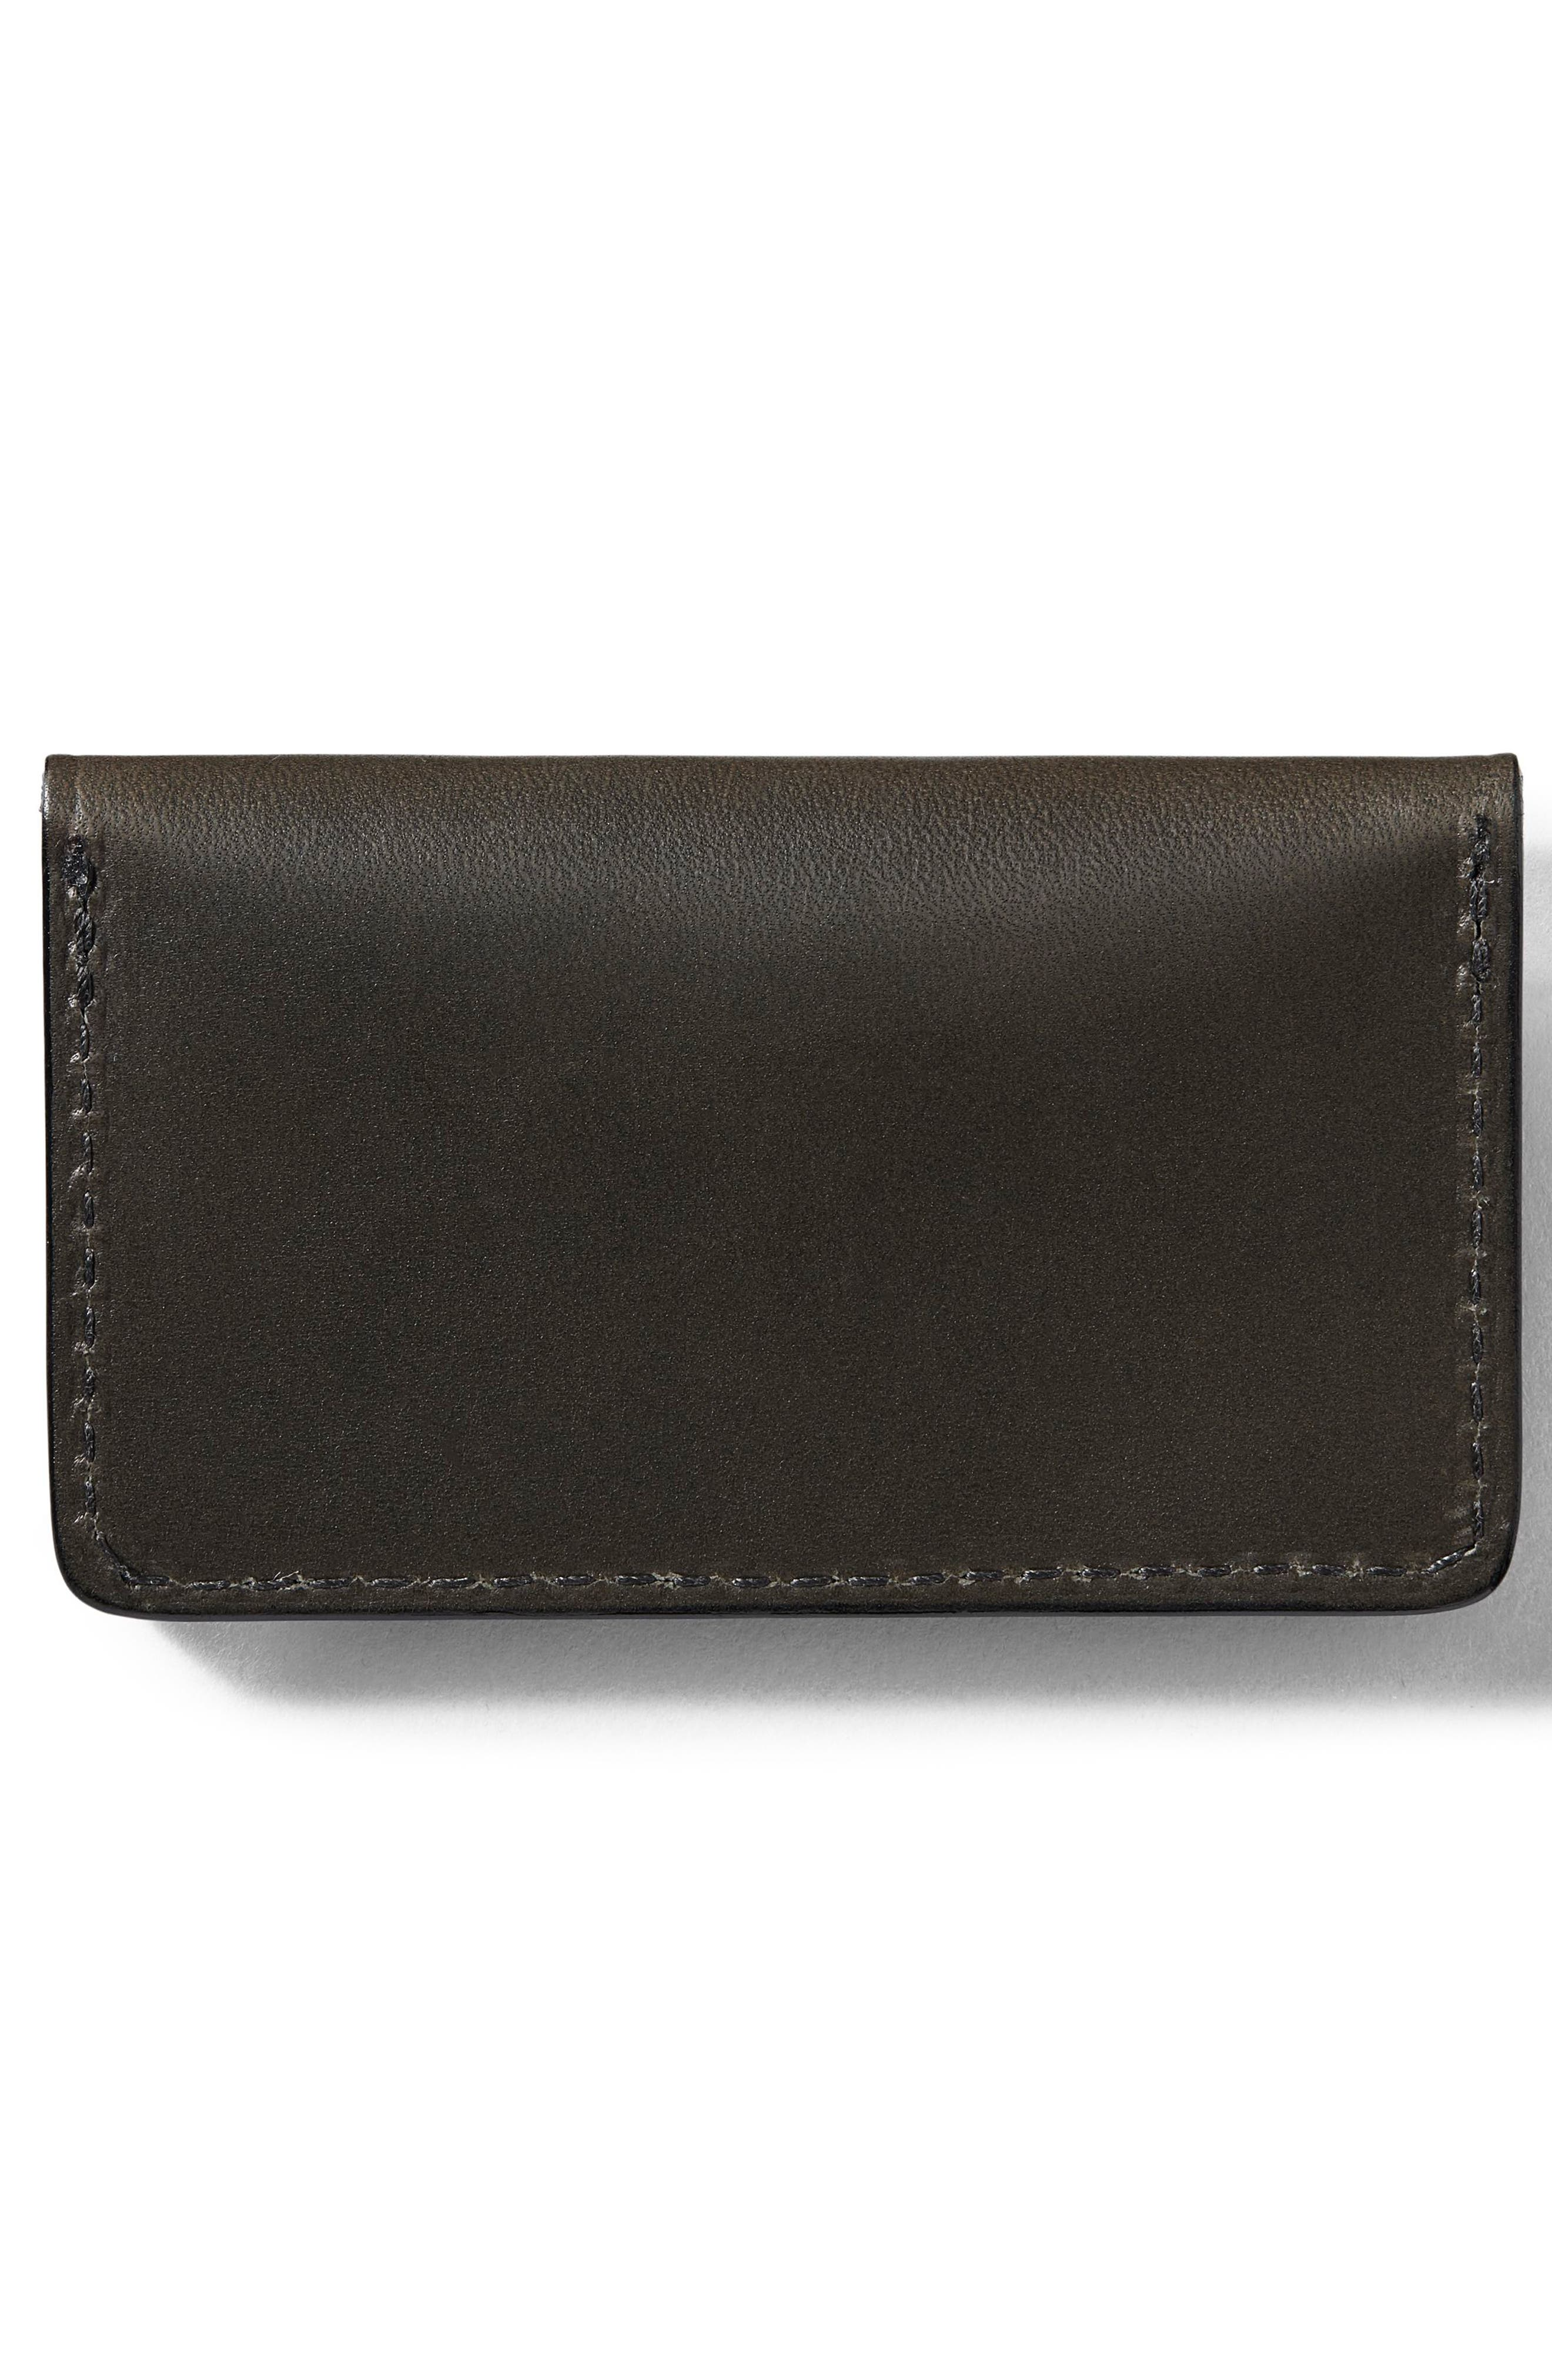 Snap Leather Wallet,                             Alternate thumbnail 2, color,                             Brown